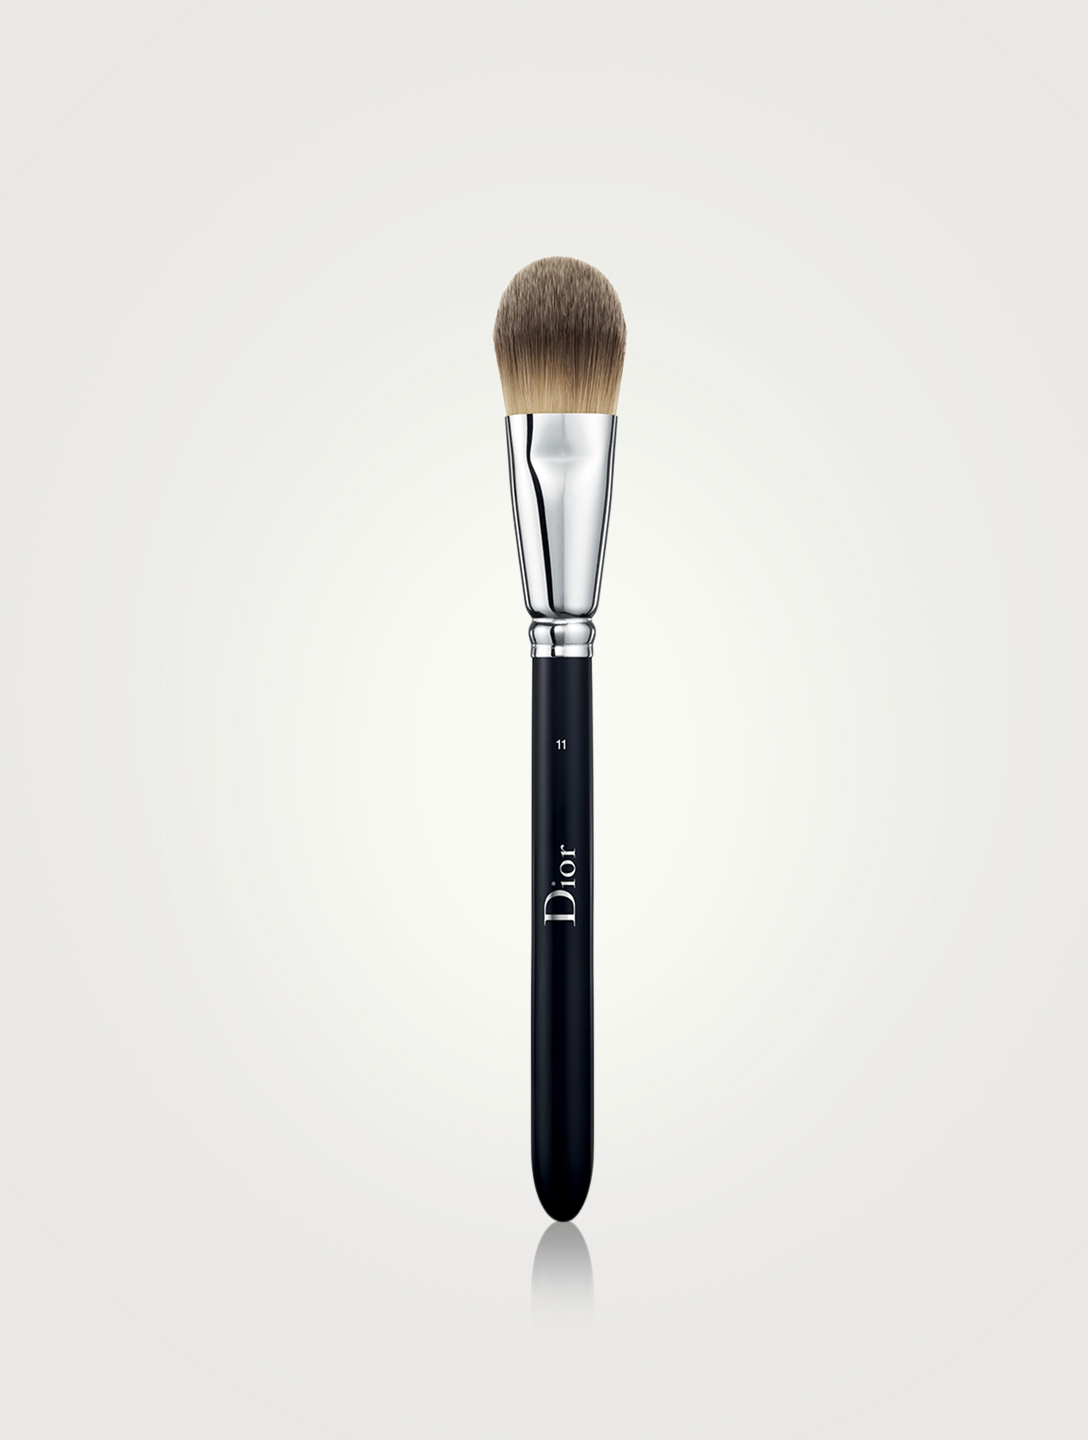 DIOR Dior Backstage Light Coverage Fluid Foundation Brush N° 11 Beauty